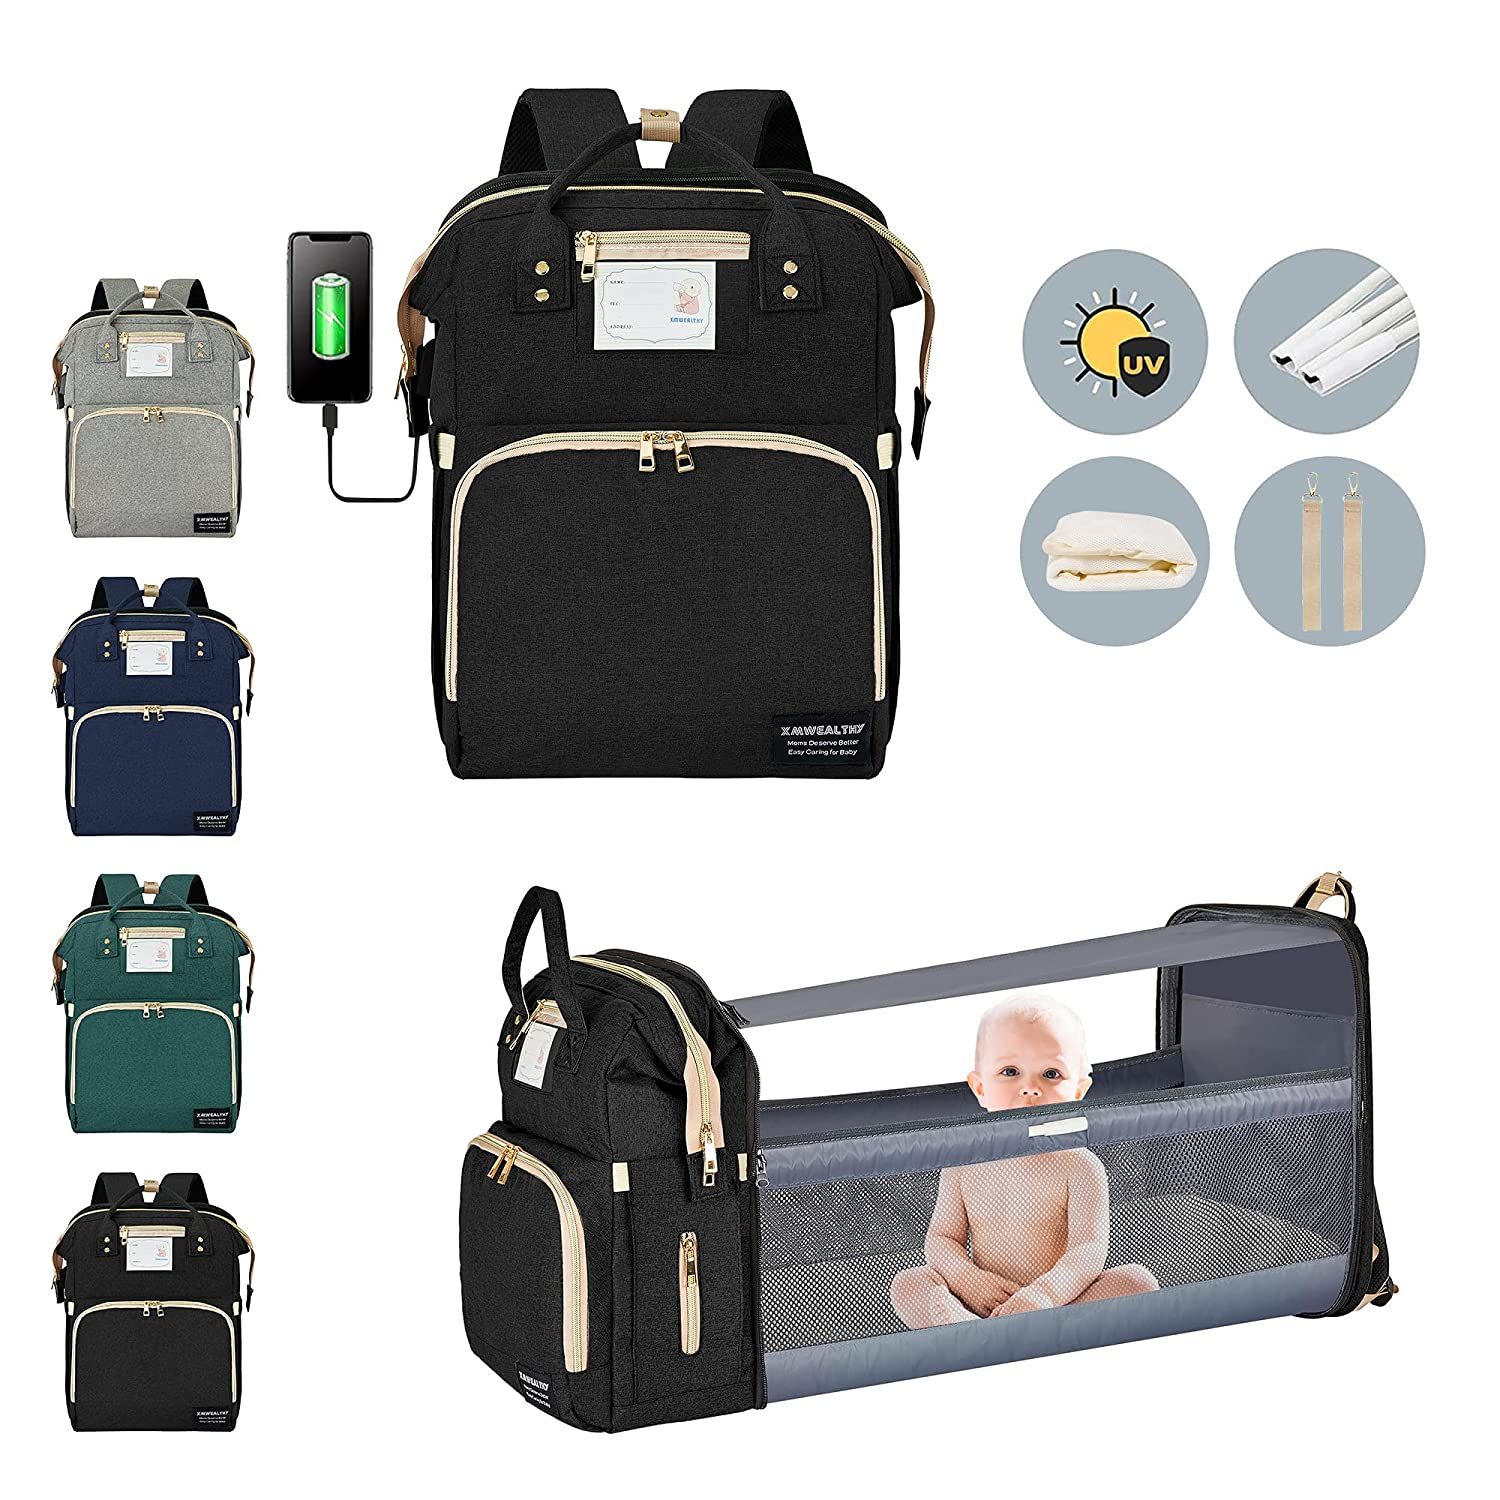 Diaper Bag Backpack Baby Diaper Bag with Changing Station for Baby Girls Boys Waterproof Portable Travel Back Pack Foldable Baby Changing Pad with USB Port & Stroller Straps, Large Capacity, Black